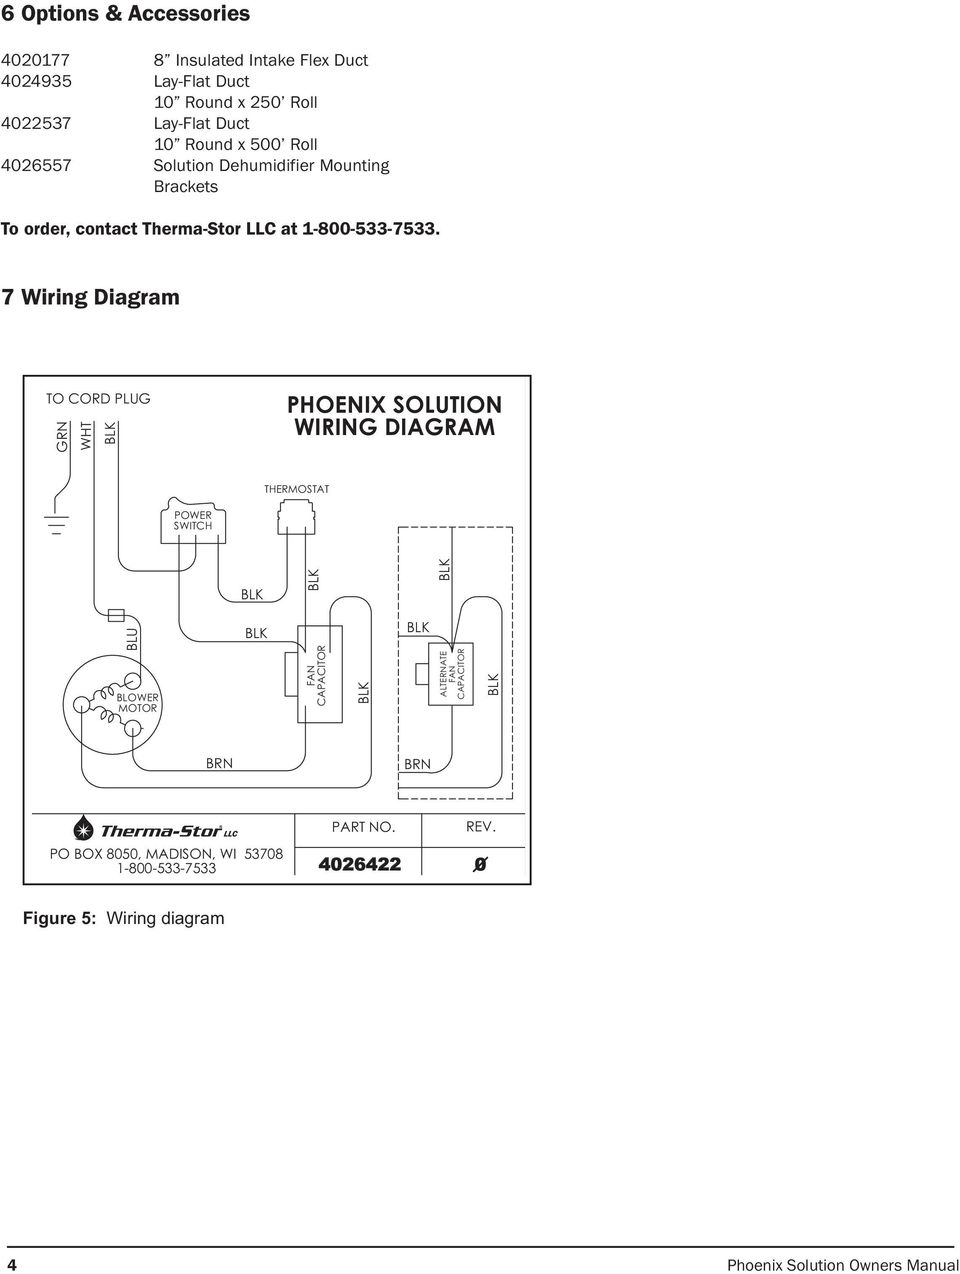 7 Wiring Diagram TO CORD PLUG GRN WHT PHOENIX SOLUTION WIRING DIAGRAM THERMOSTAT POWER SWITCH BLU BLOWER MOTOR FAN CAPACITOR ALTERNATE